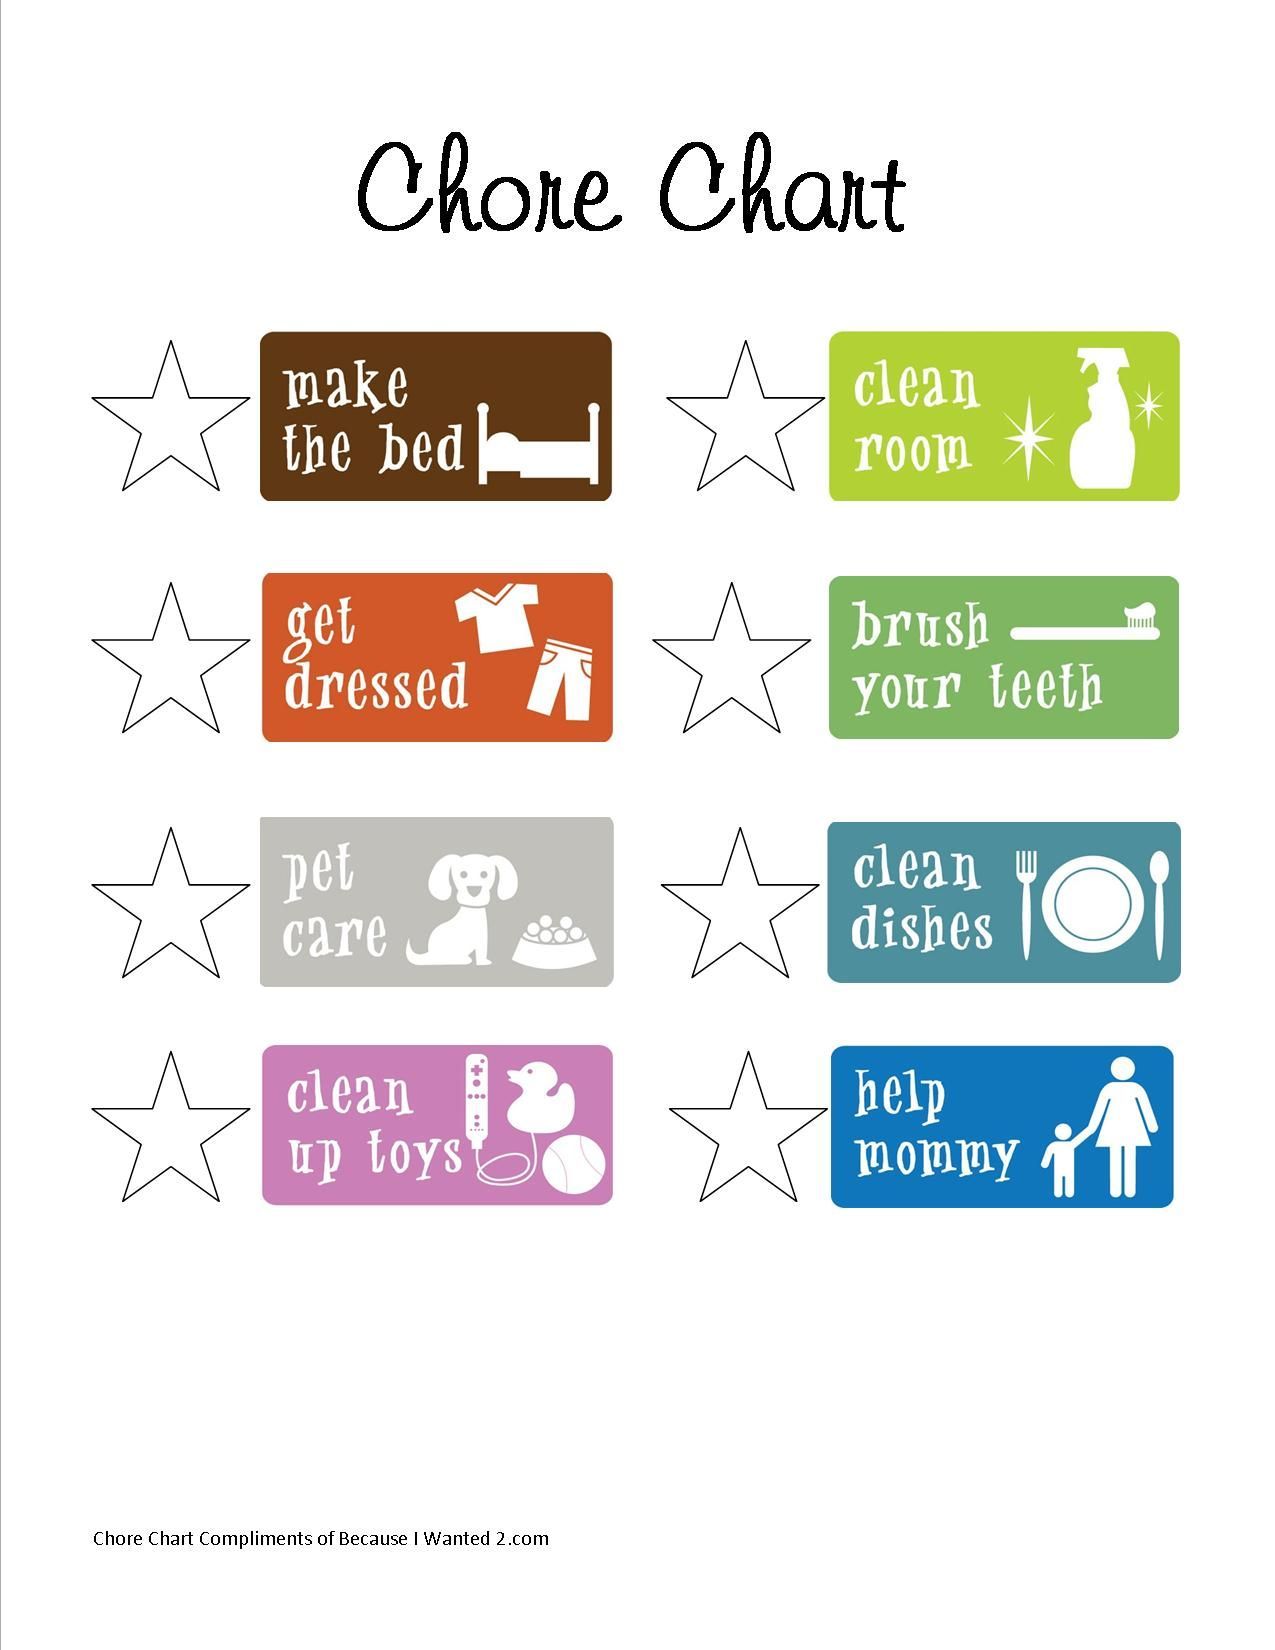 photo about Free Printable Chore Chart Ideas called Printable Chore Chart For my small children Chore chart little ones